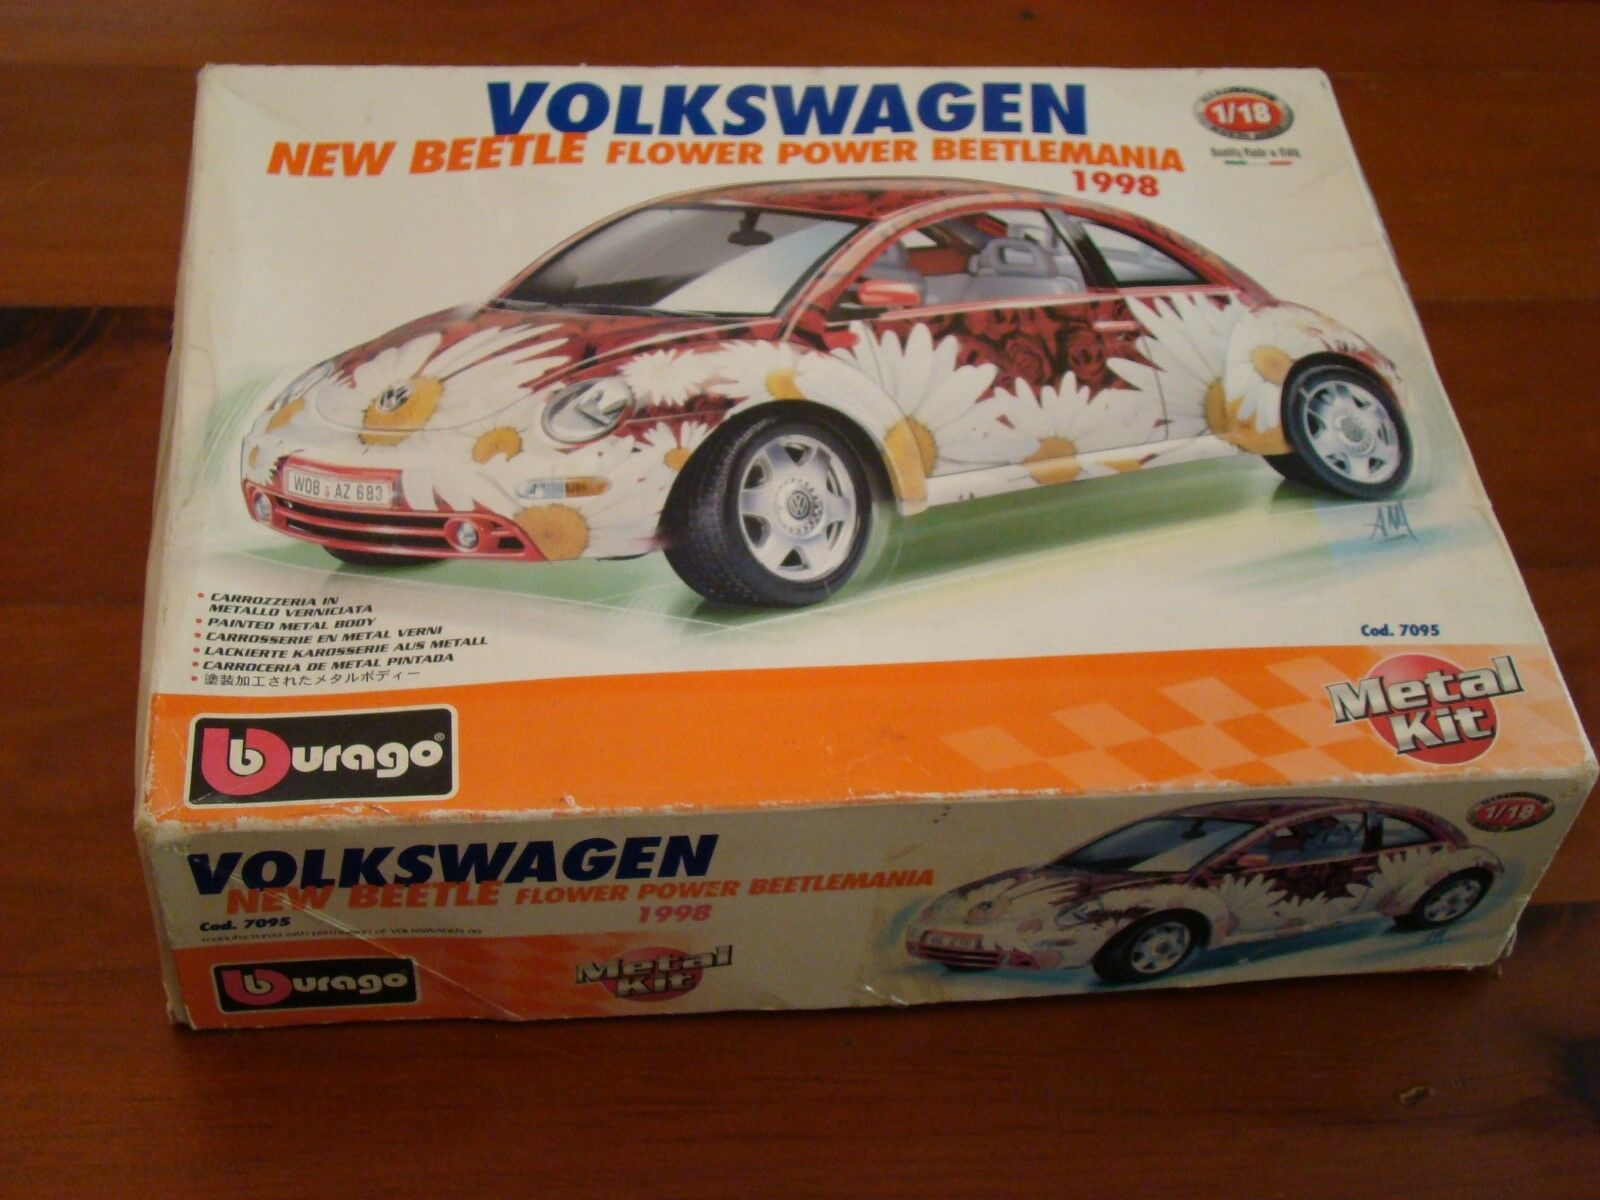 1 18 Volkswagen Beetle 1998 Flower Power Beetlemania V Dub Special Metal KIT